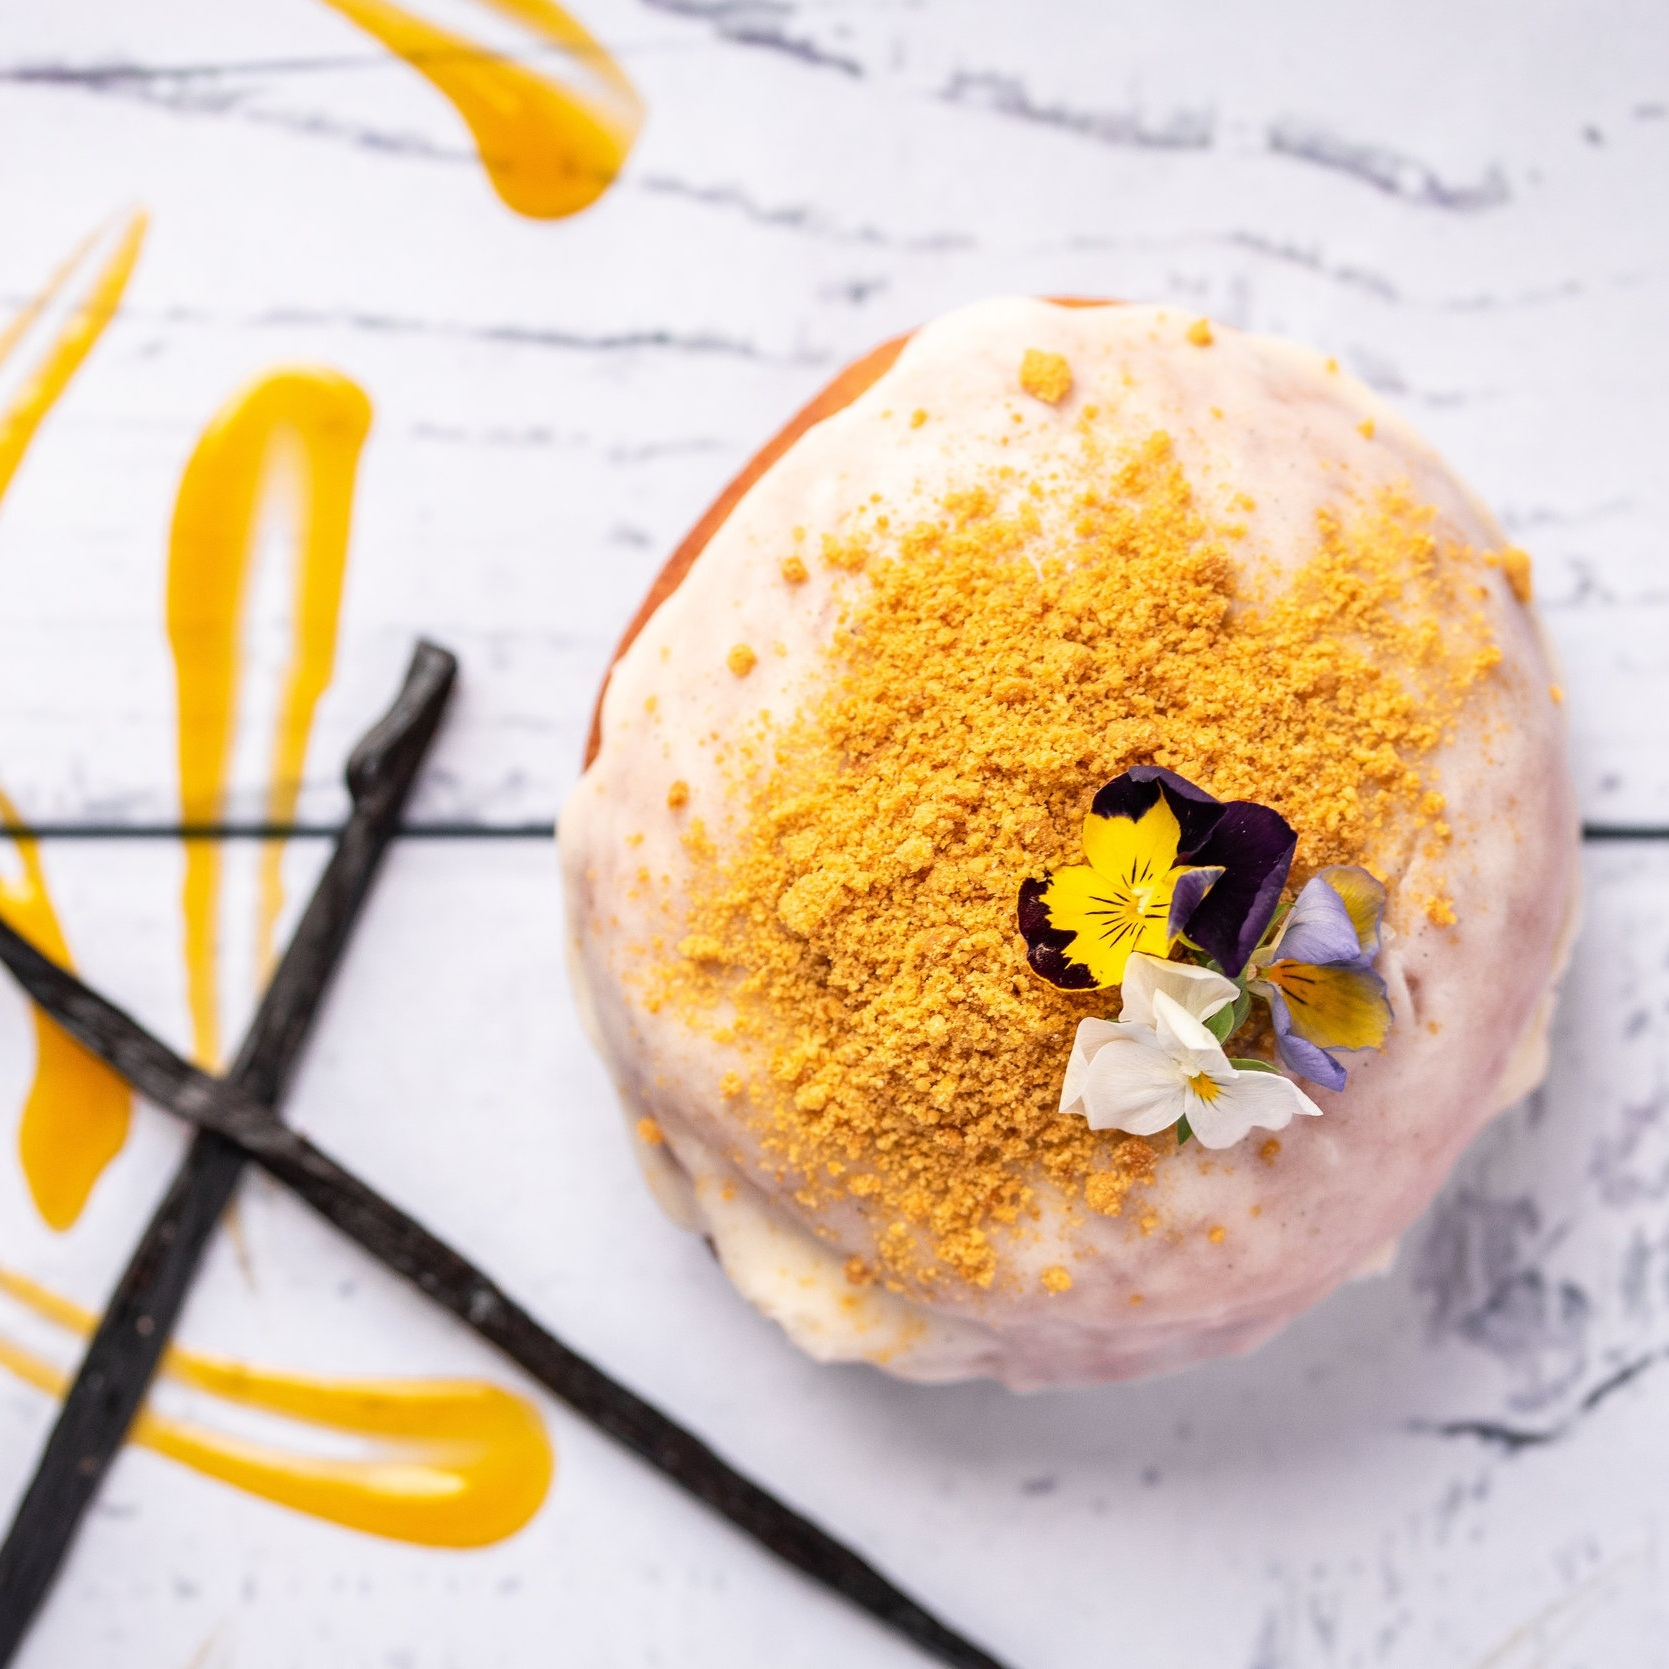 Tropical Mango & Passionfruit - Signature Sourdough filled with a beautifully Tropical Mango & Passionfruit Curd topped off with a Sweet Madagascan Vanilla Bean Glaze and crunchy Gingernut Crumble.*Allergen advice